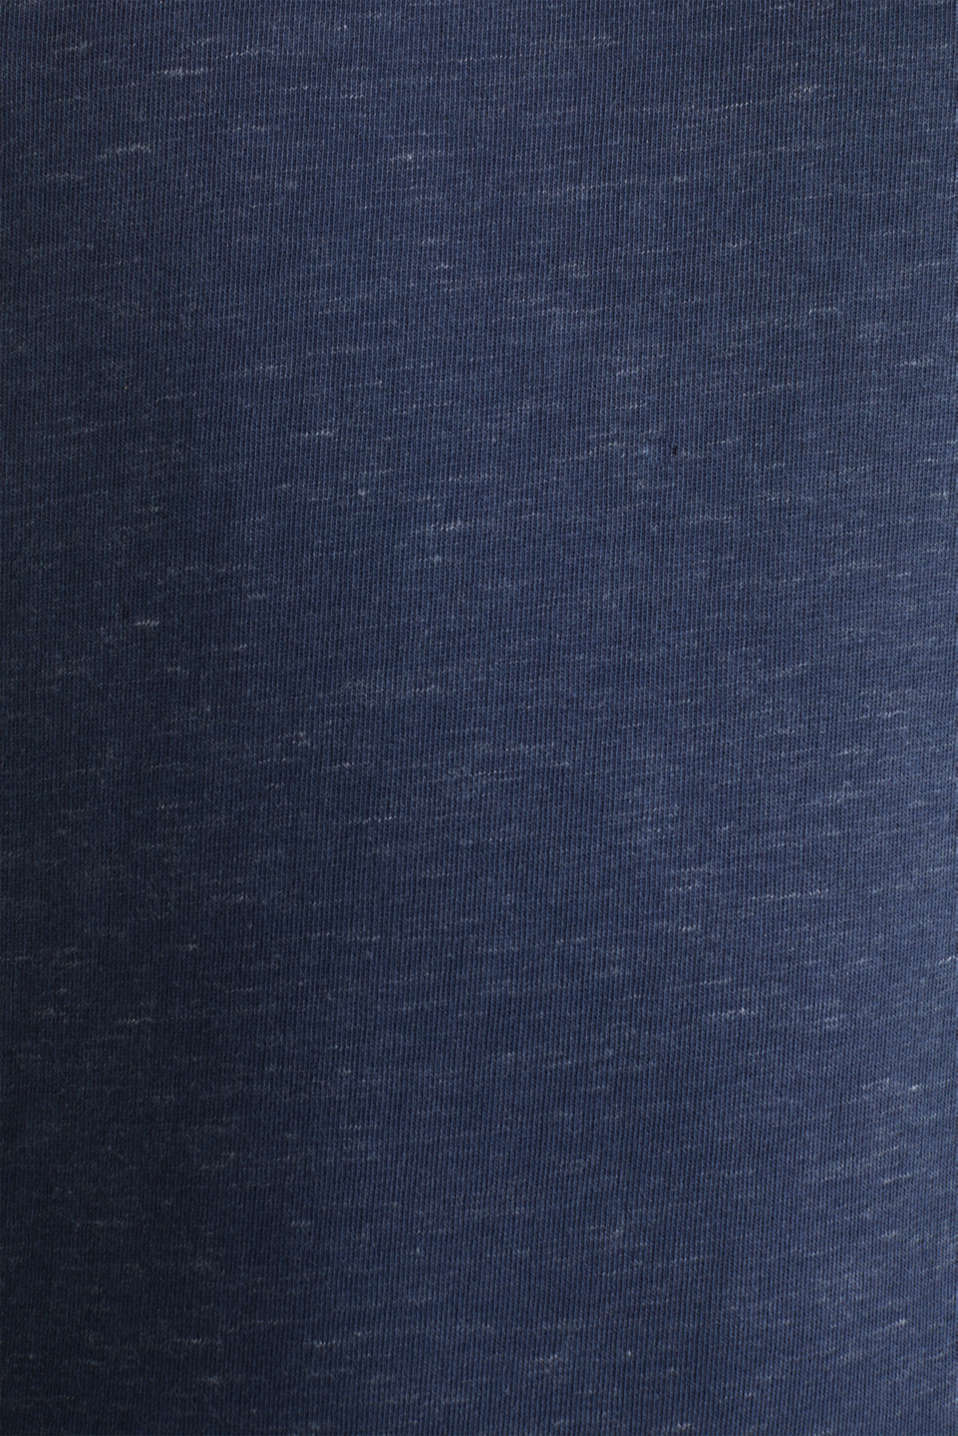 Sweatshirt with a two-tone drawstring collar, NAVY 5, detail image number 4